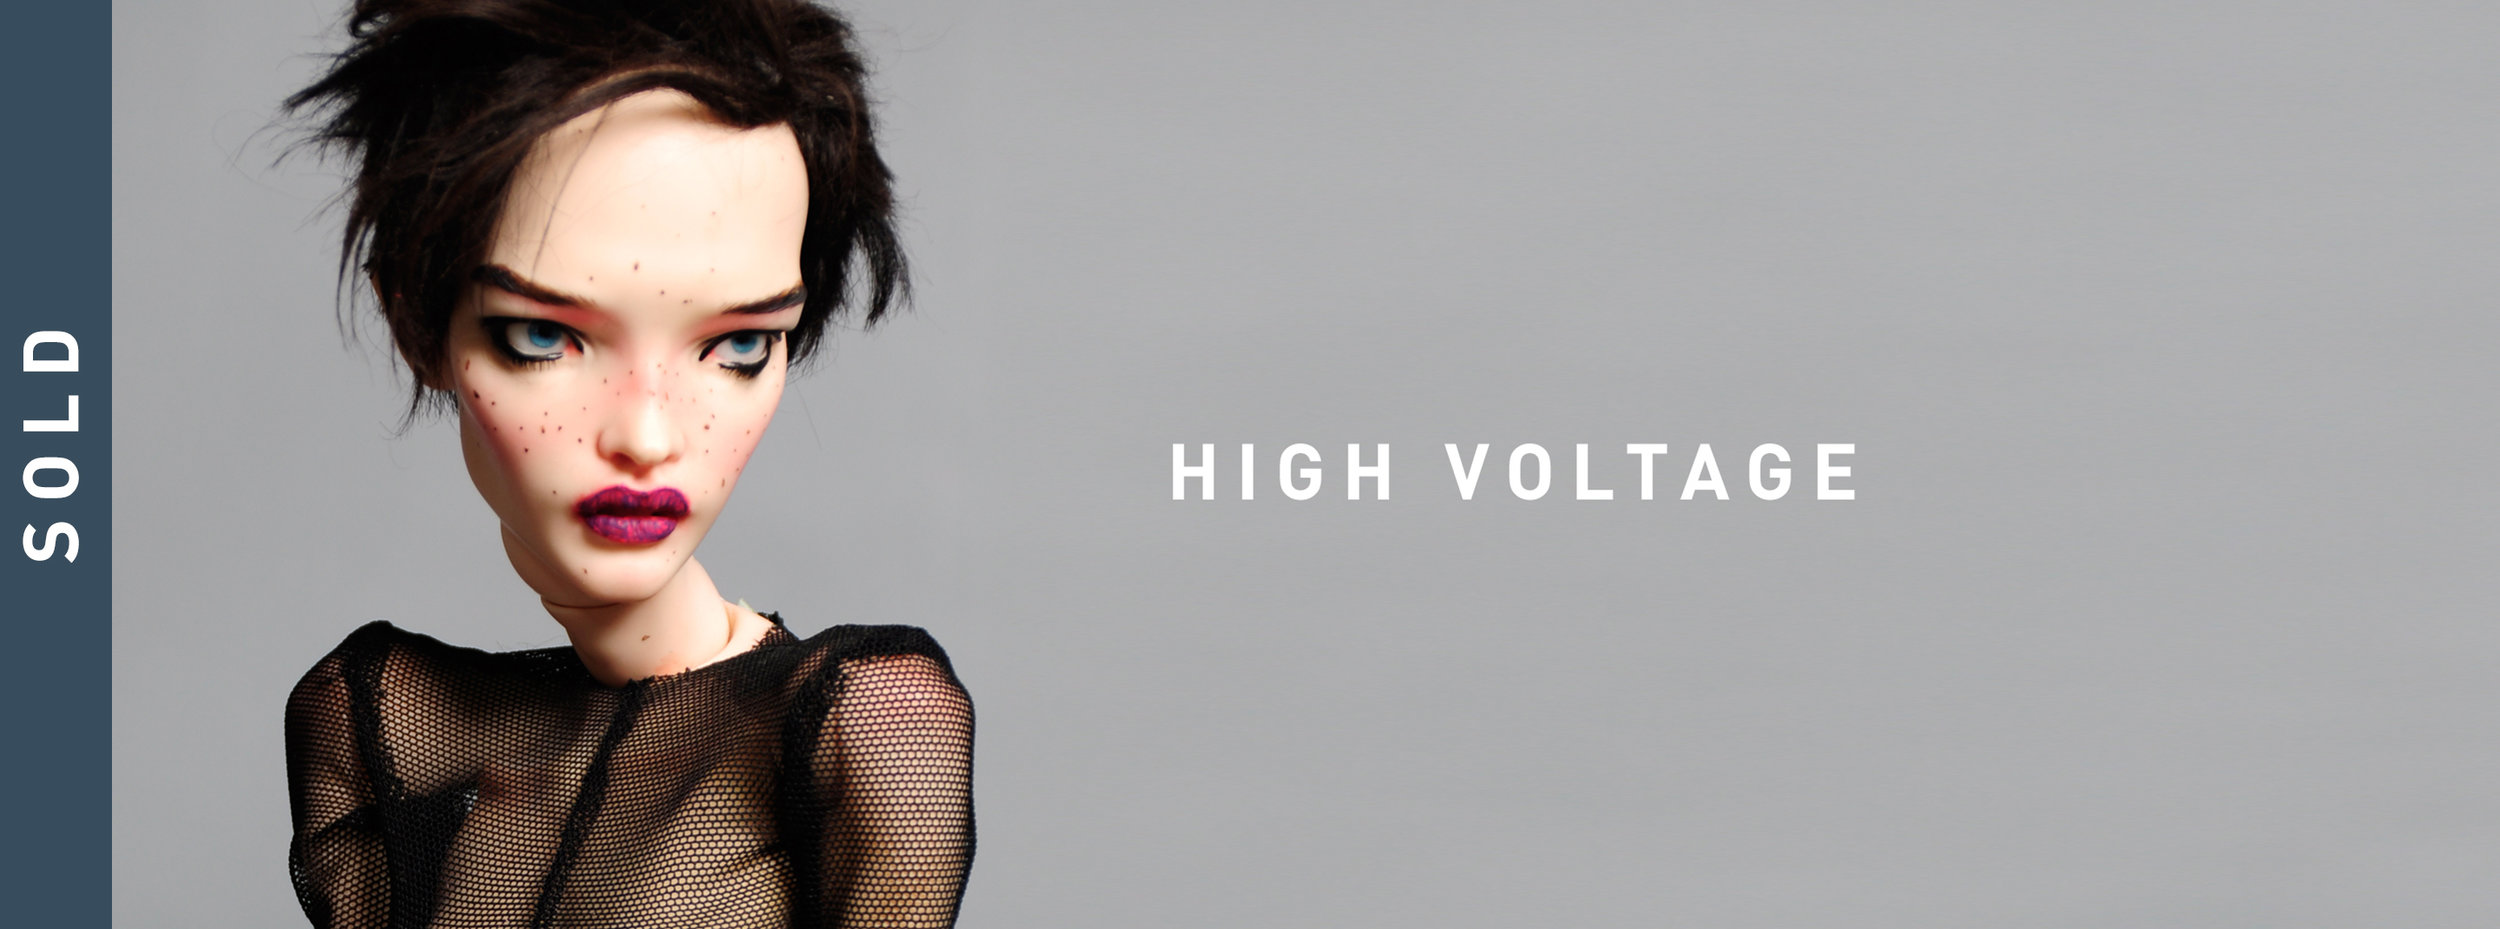 high-voltage-Gallery2.jpg